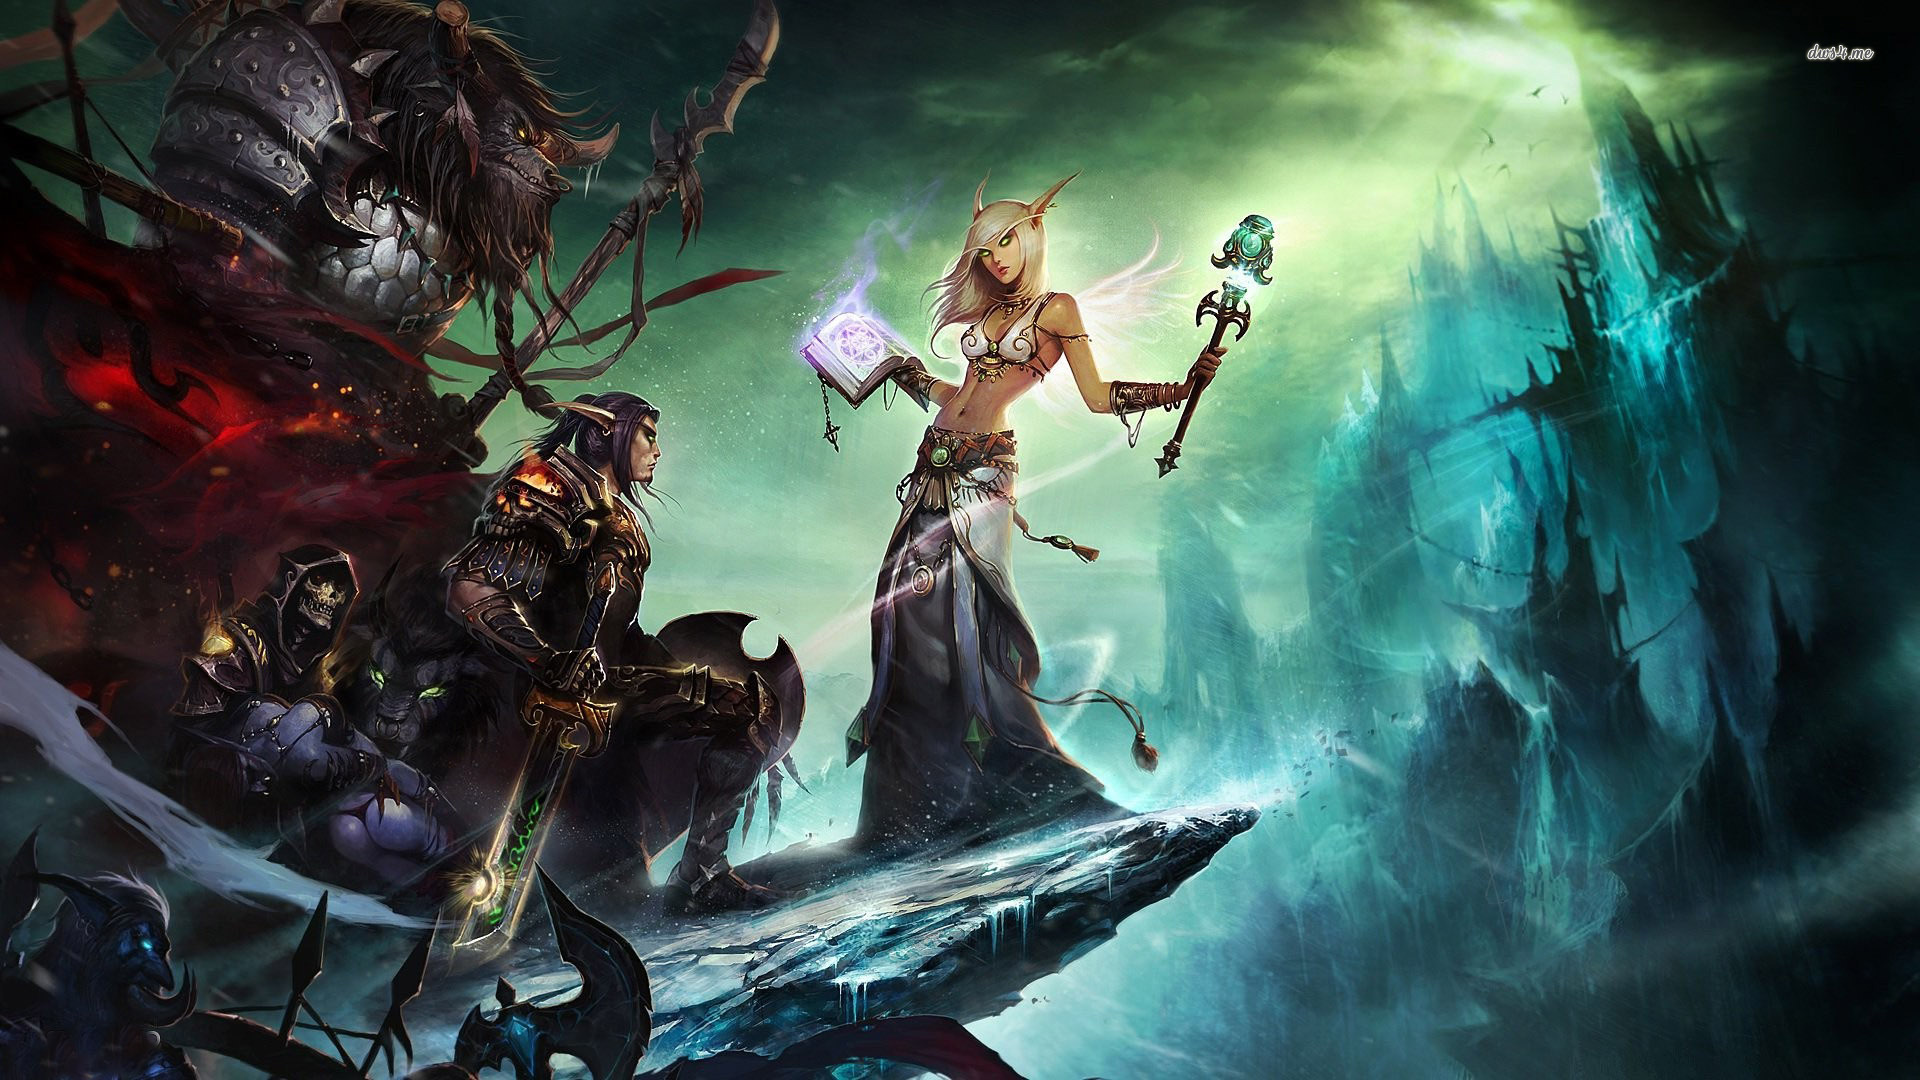 Hd Wallpapers World Of Warcraft Sf Wallpaper